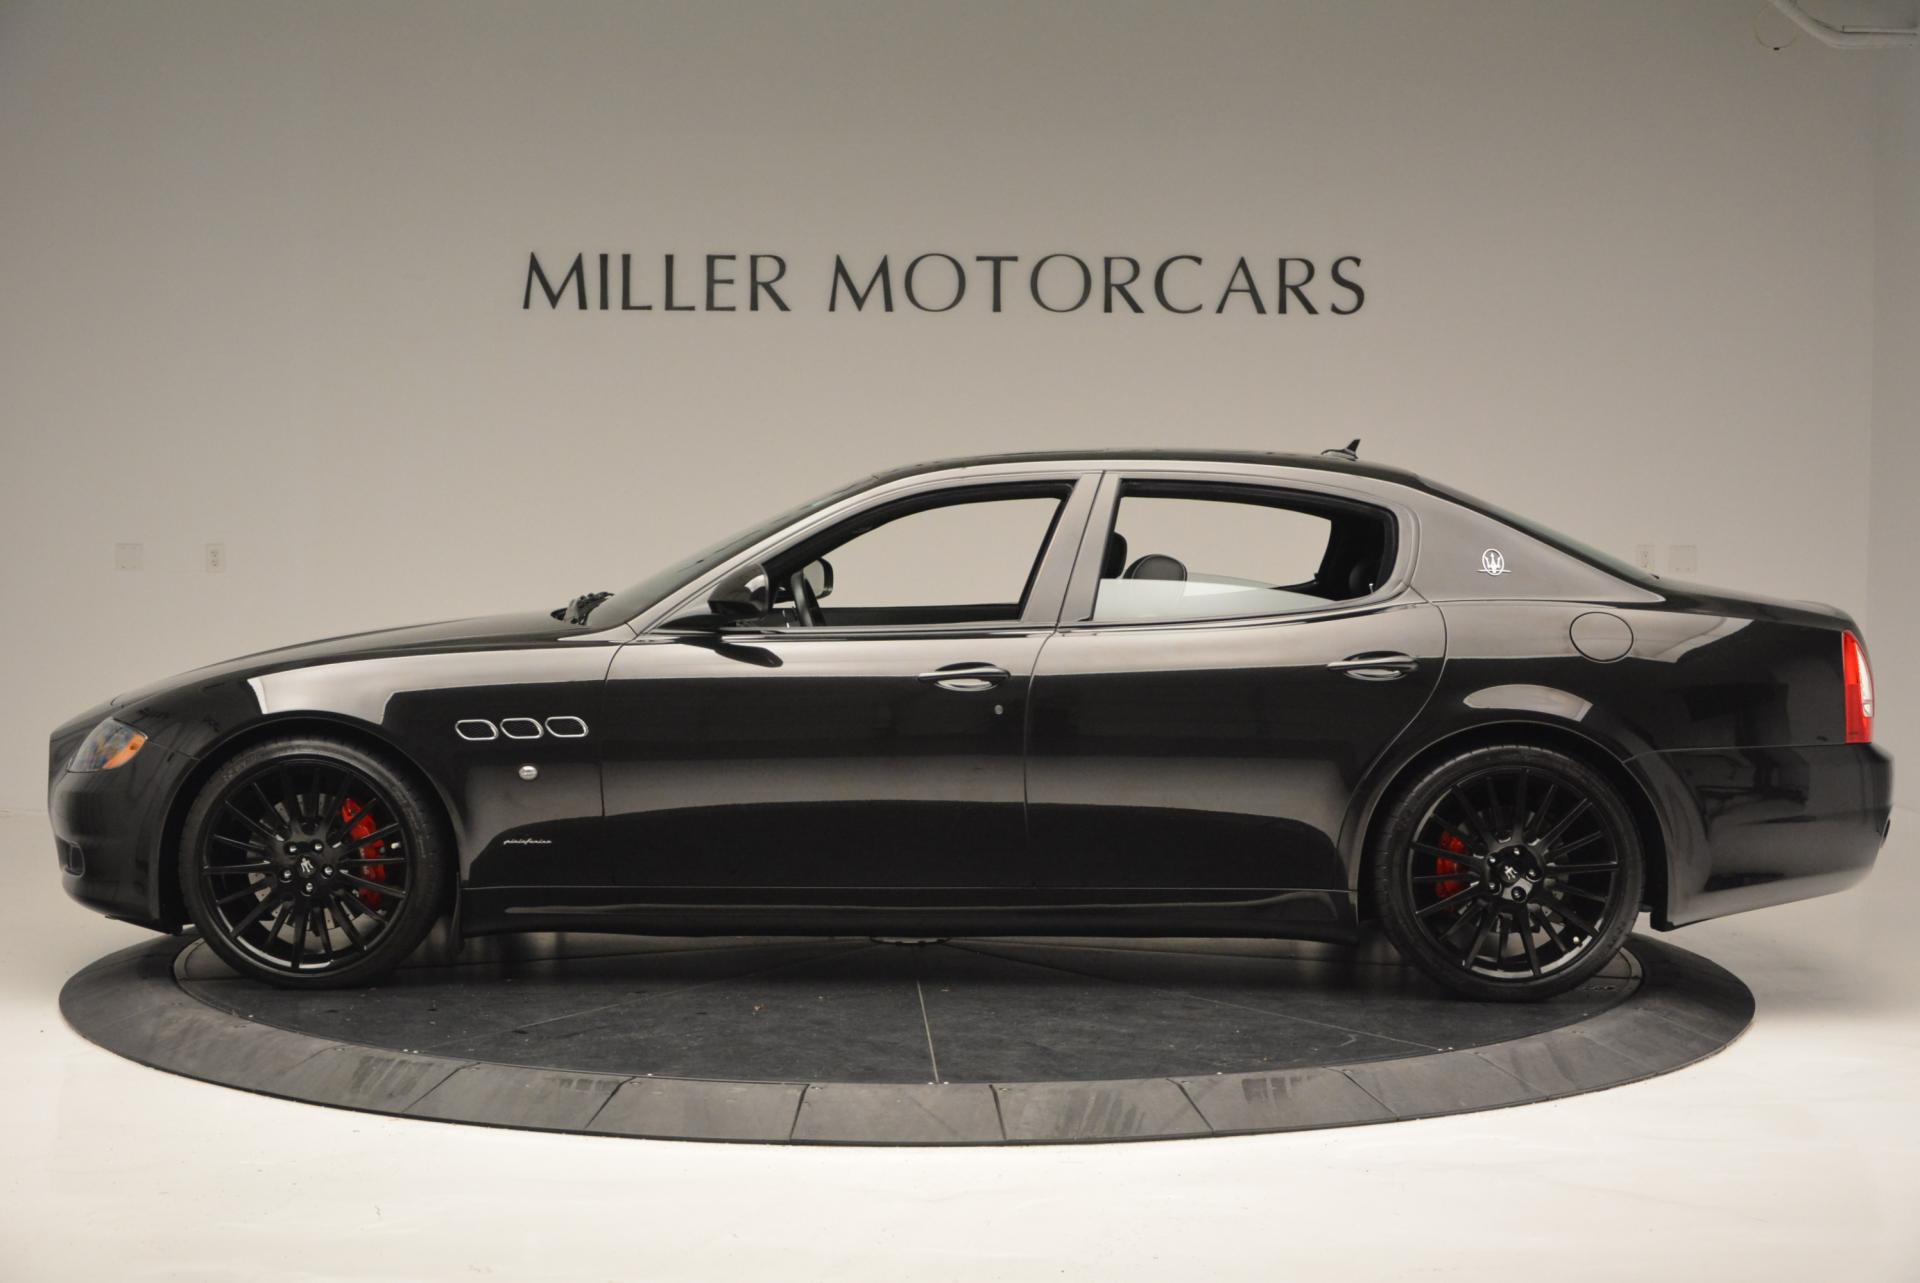 Used 2011 Maserati Quattroporte Sport GT S For Sale In Westport, CT 531_p3